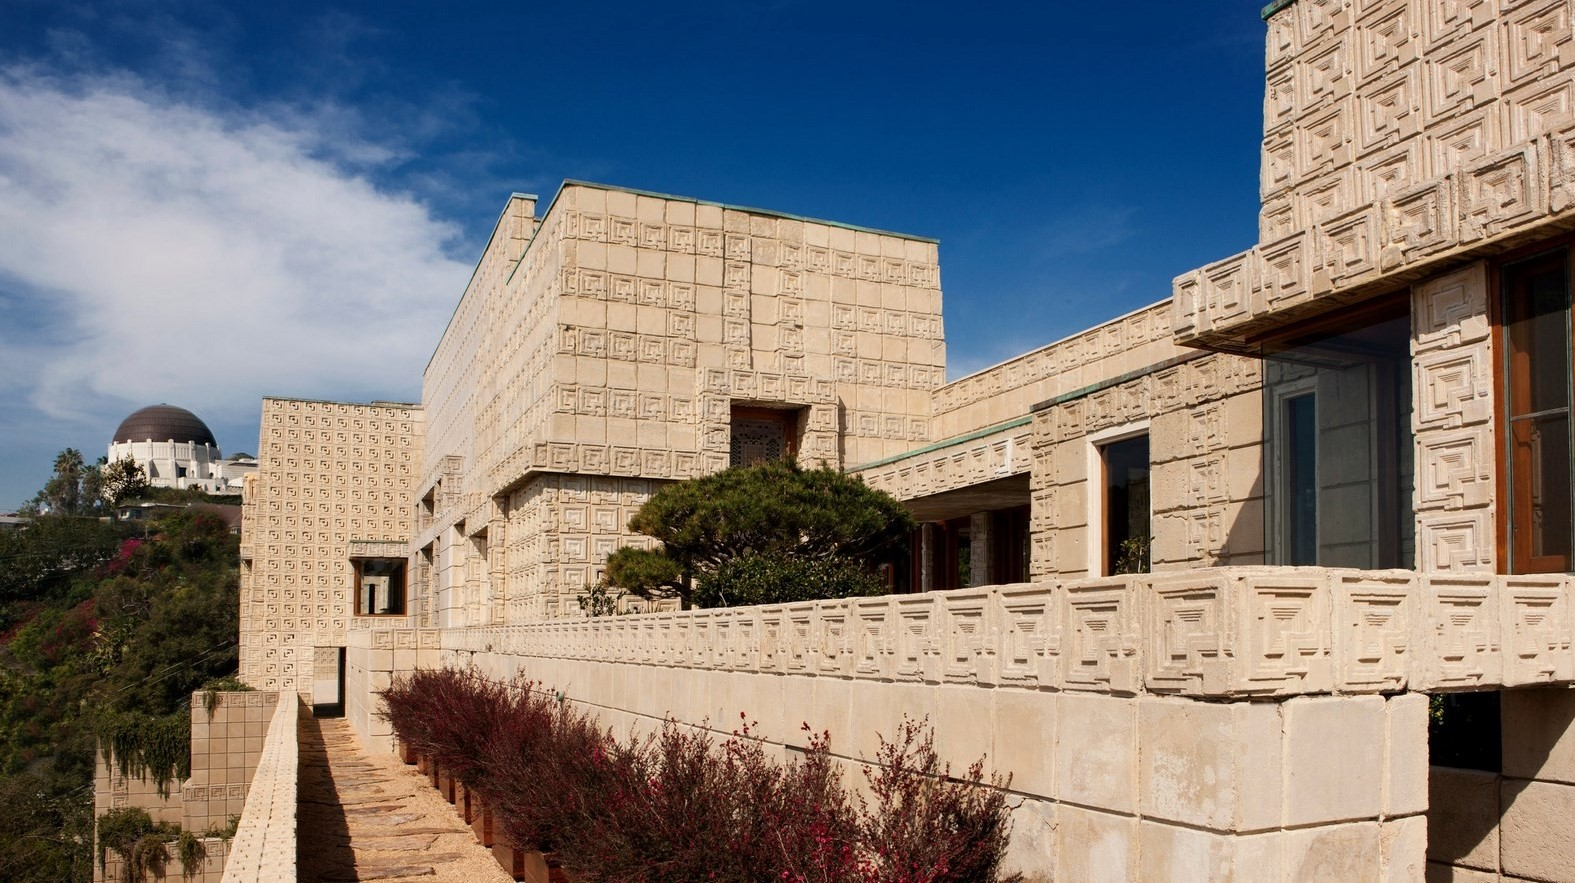 Not all modern architecture is rootless- Exterior view of Frank Lloyd Wright's Ennis House